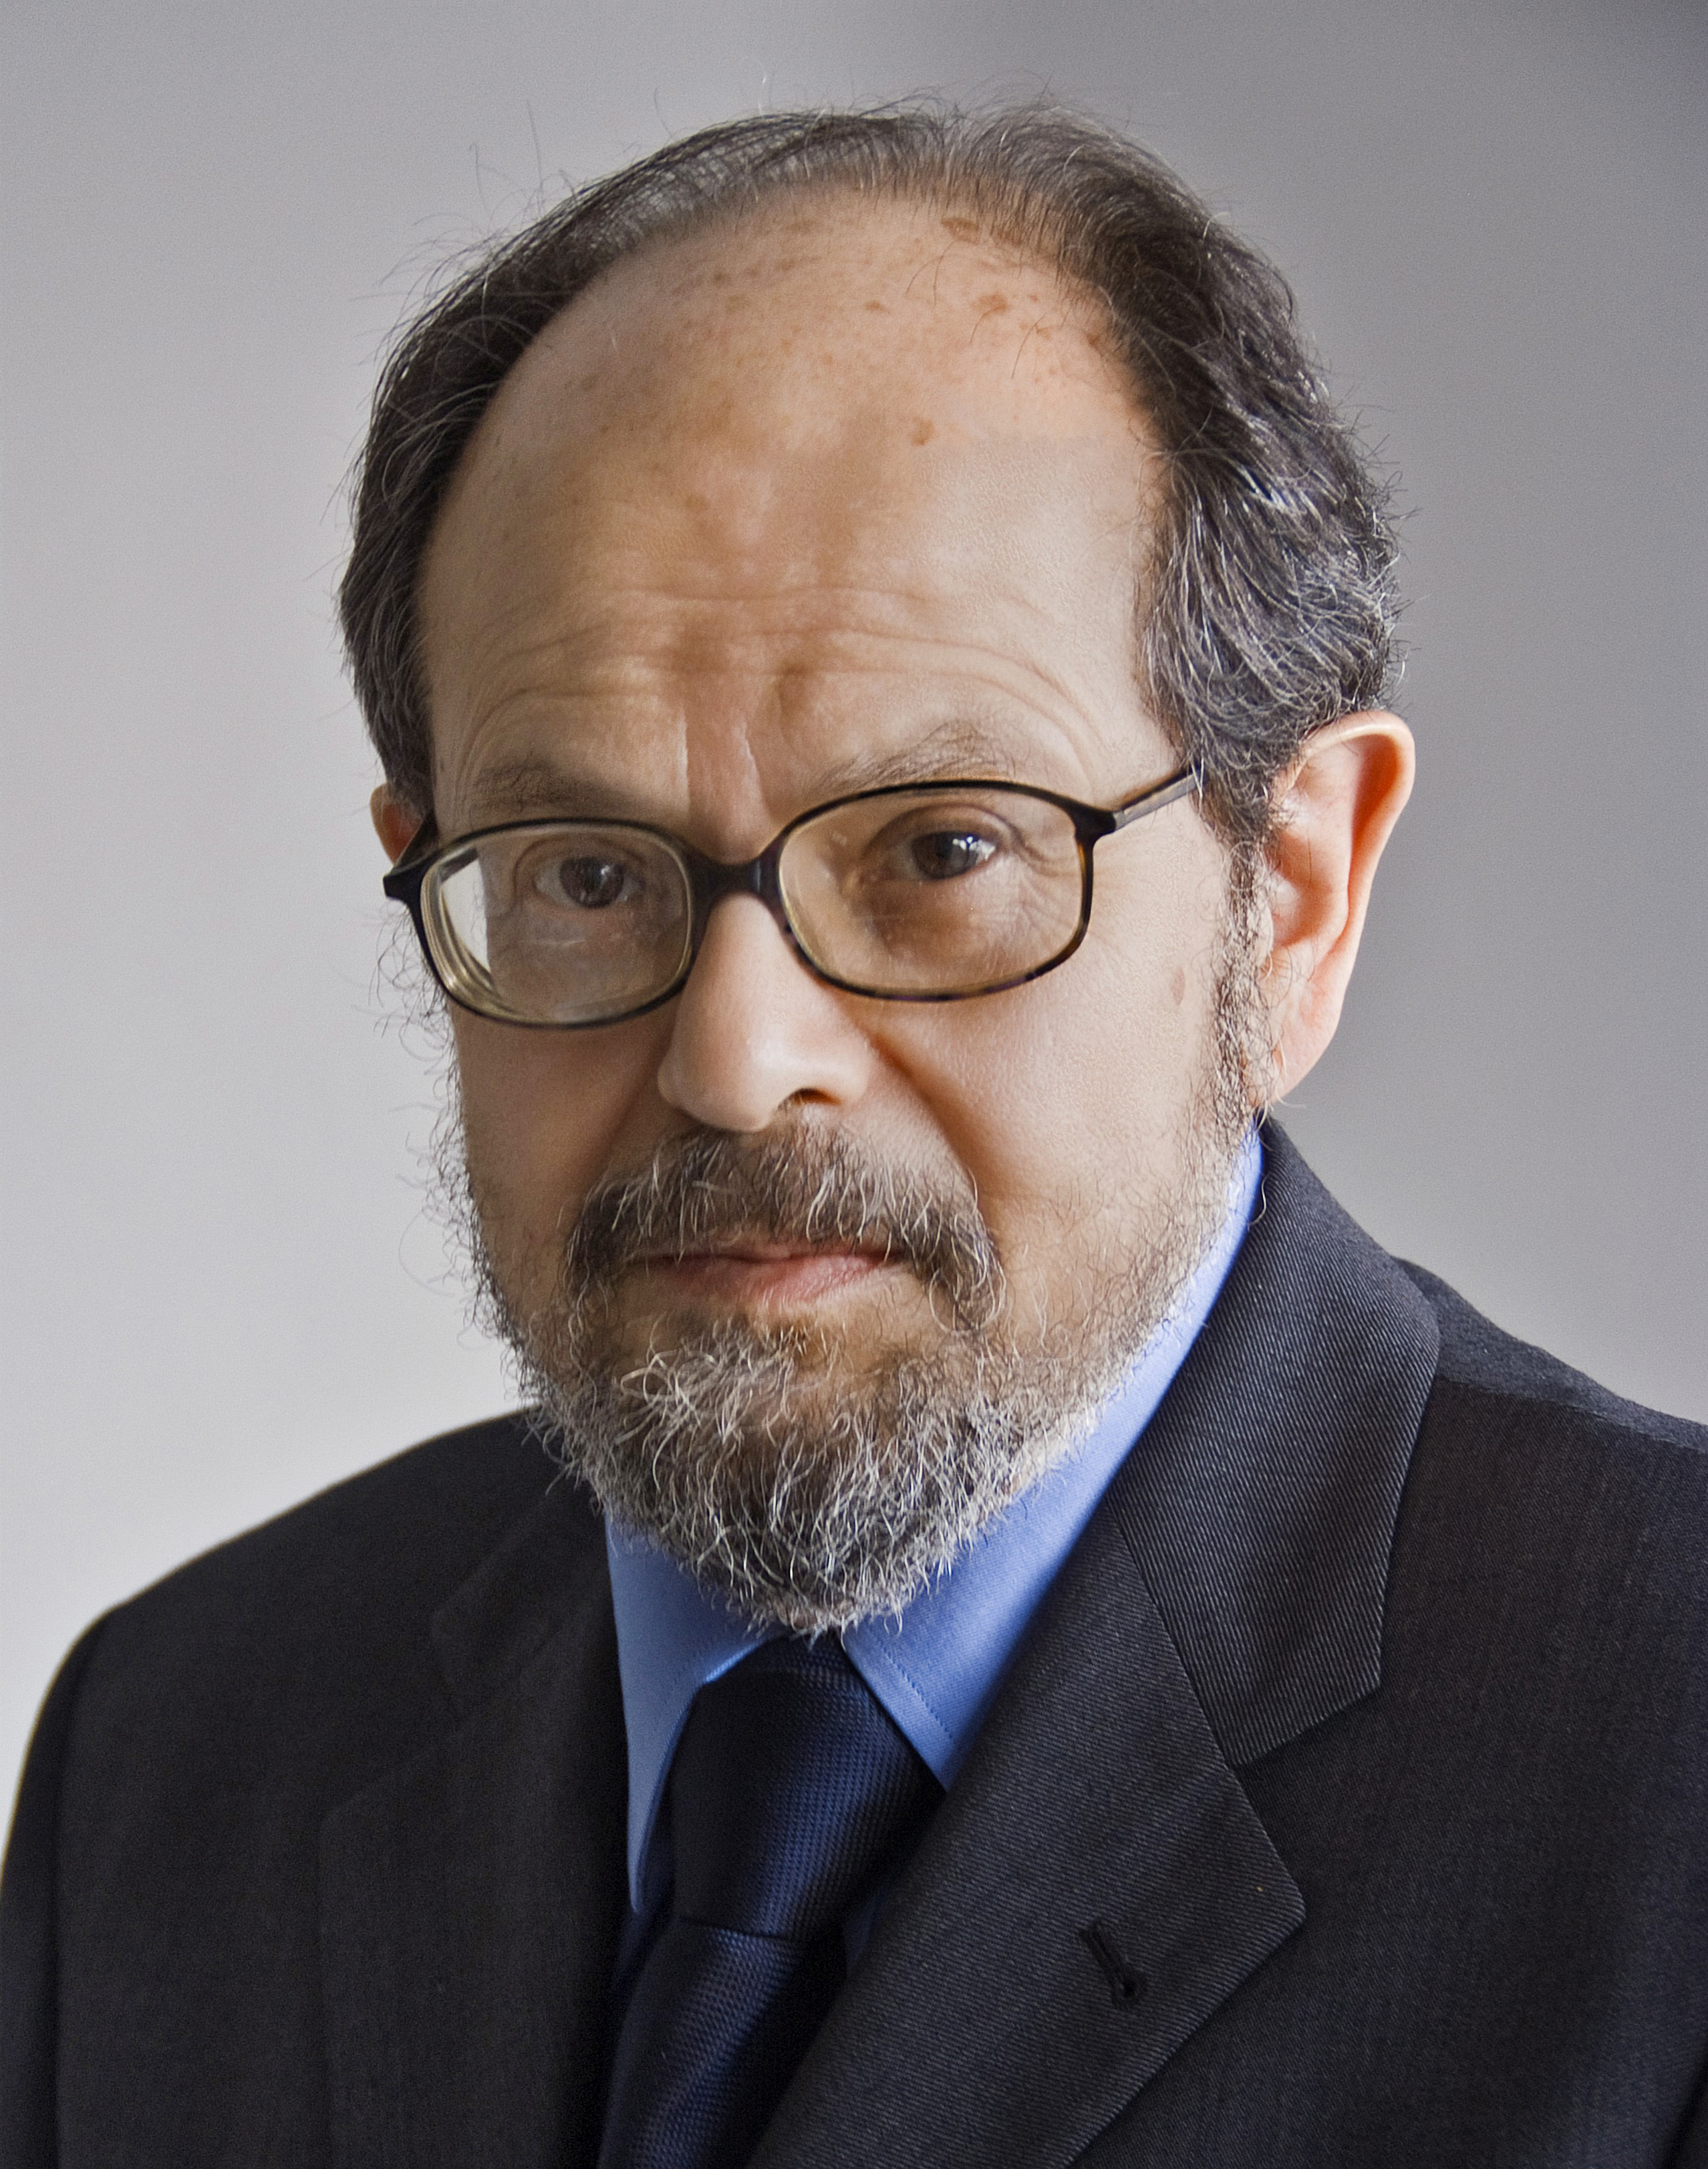 A conversation with Richard Lindzen, for Association des Climato-réalistes